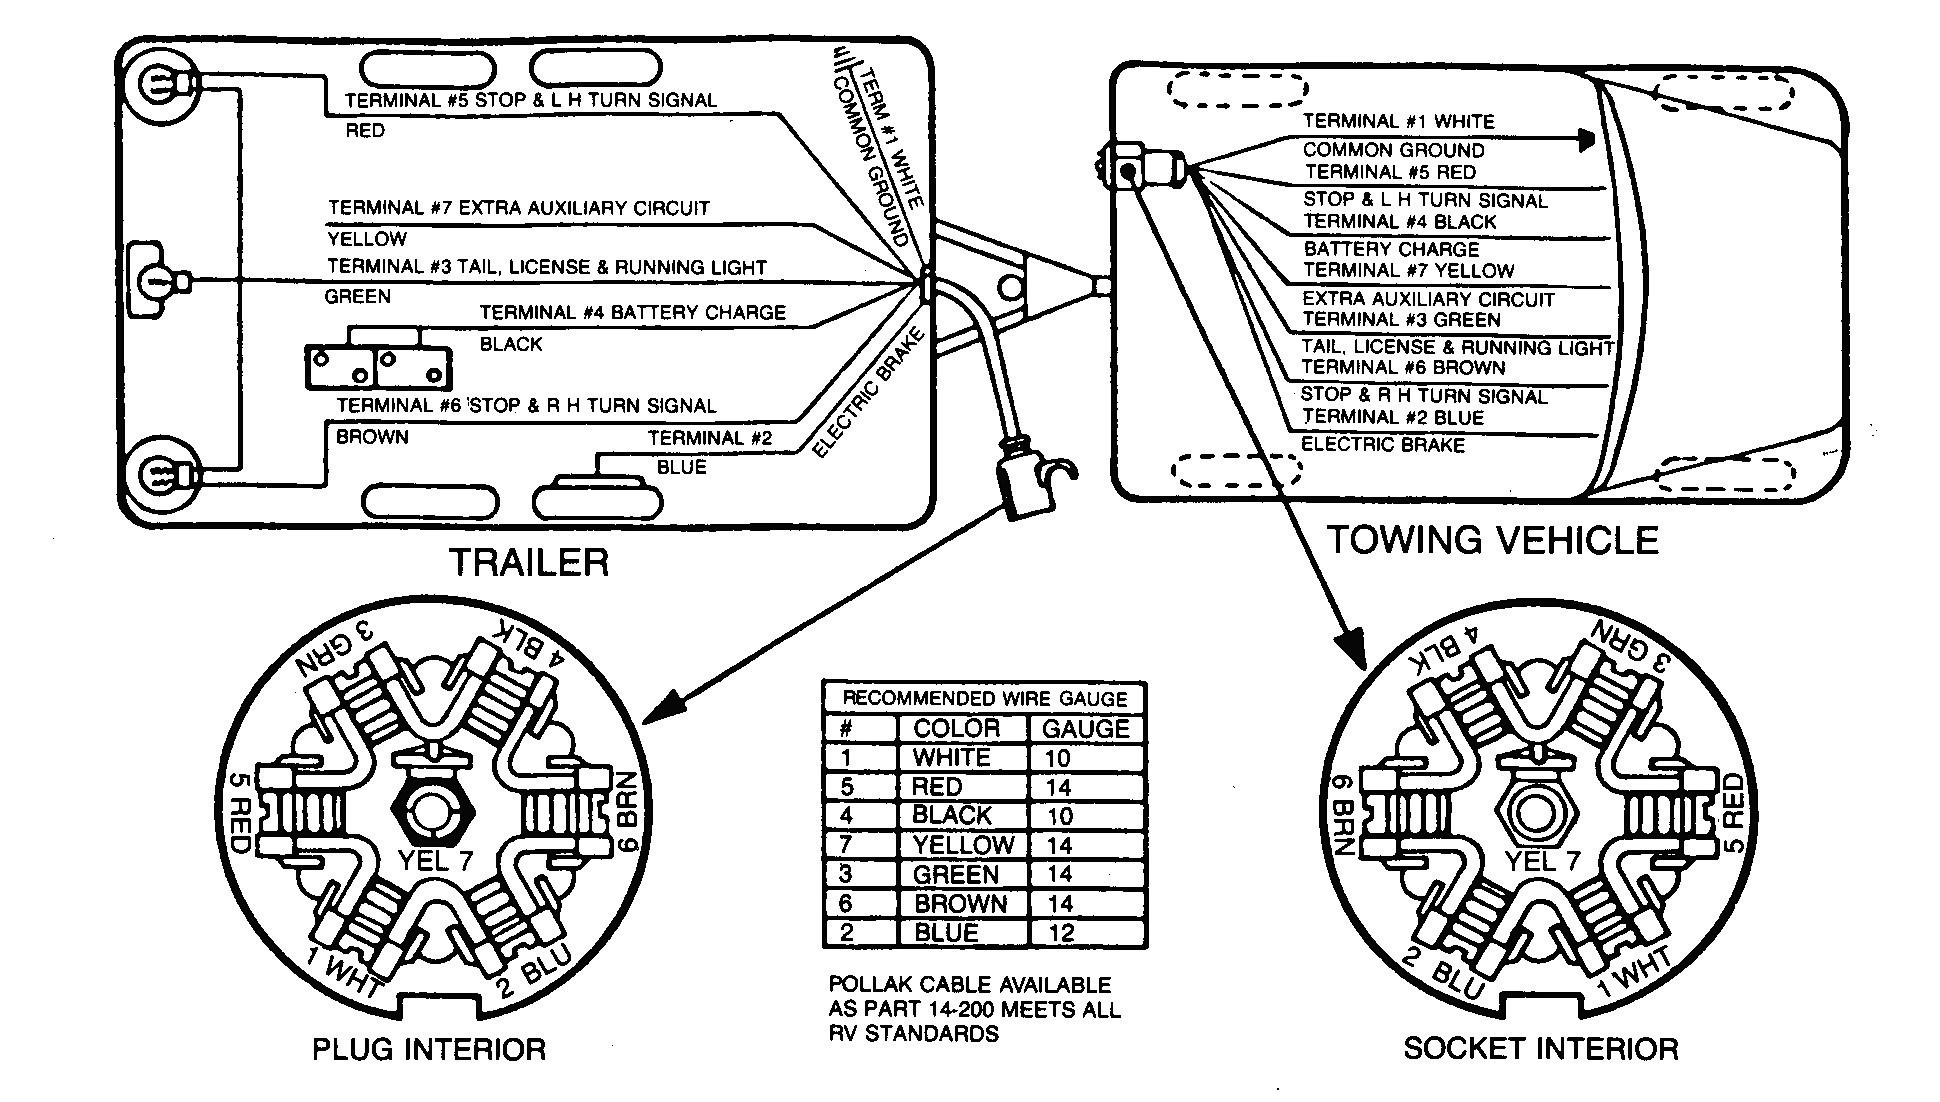 Bargman Rv 7 Blade Trailer Wiring Diagram | Wiring Diagram - 5 Blade Trailer Wiring Diagram